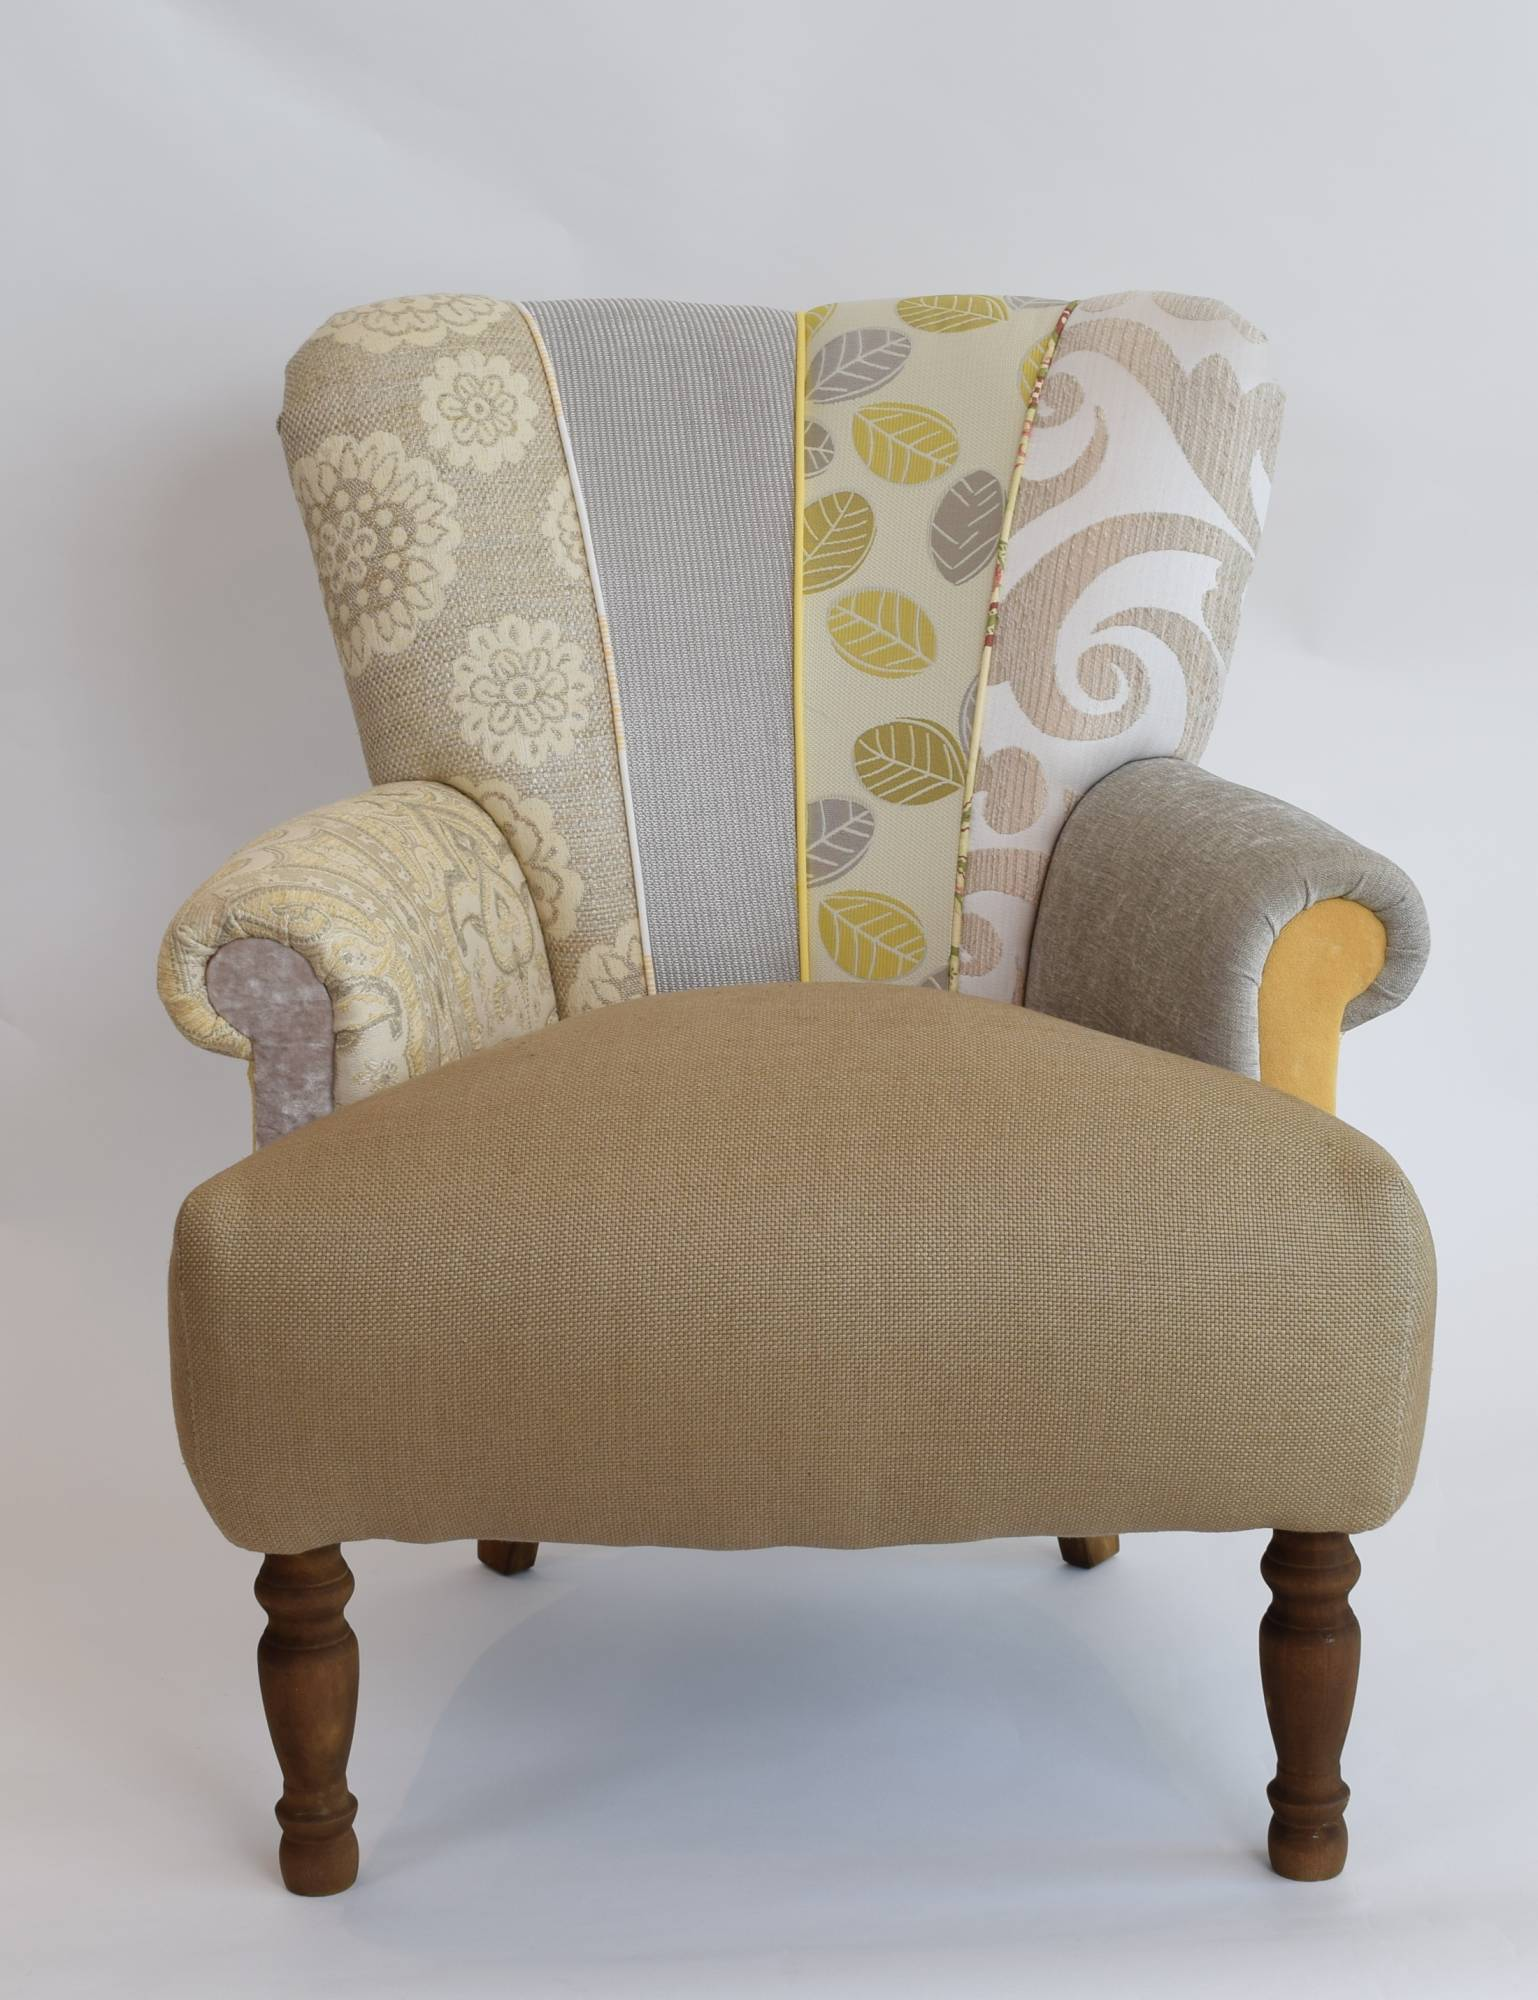 Quirky harlequin chair 167 living room furniture for Quirky furniture